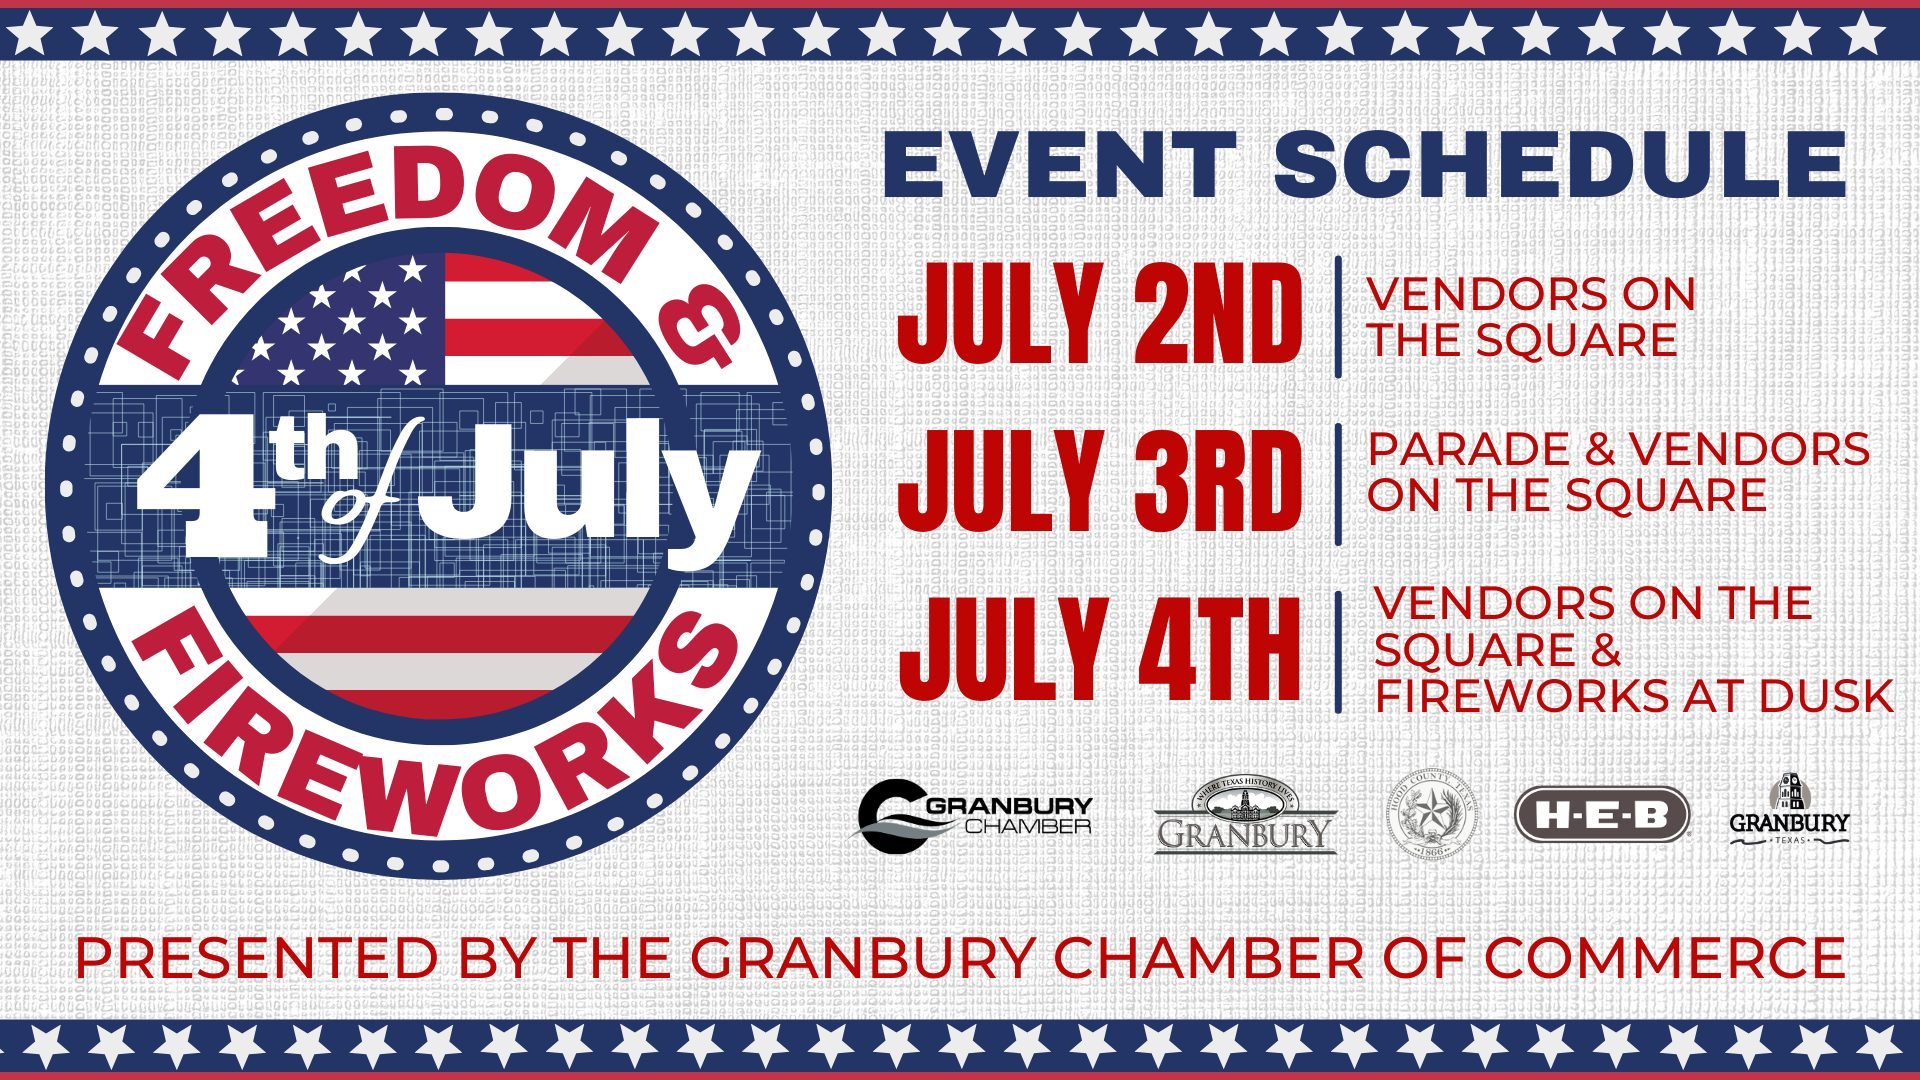 Copy of 4th of July 202 Facebook Event Cover 062320